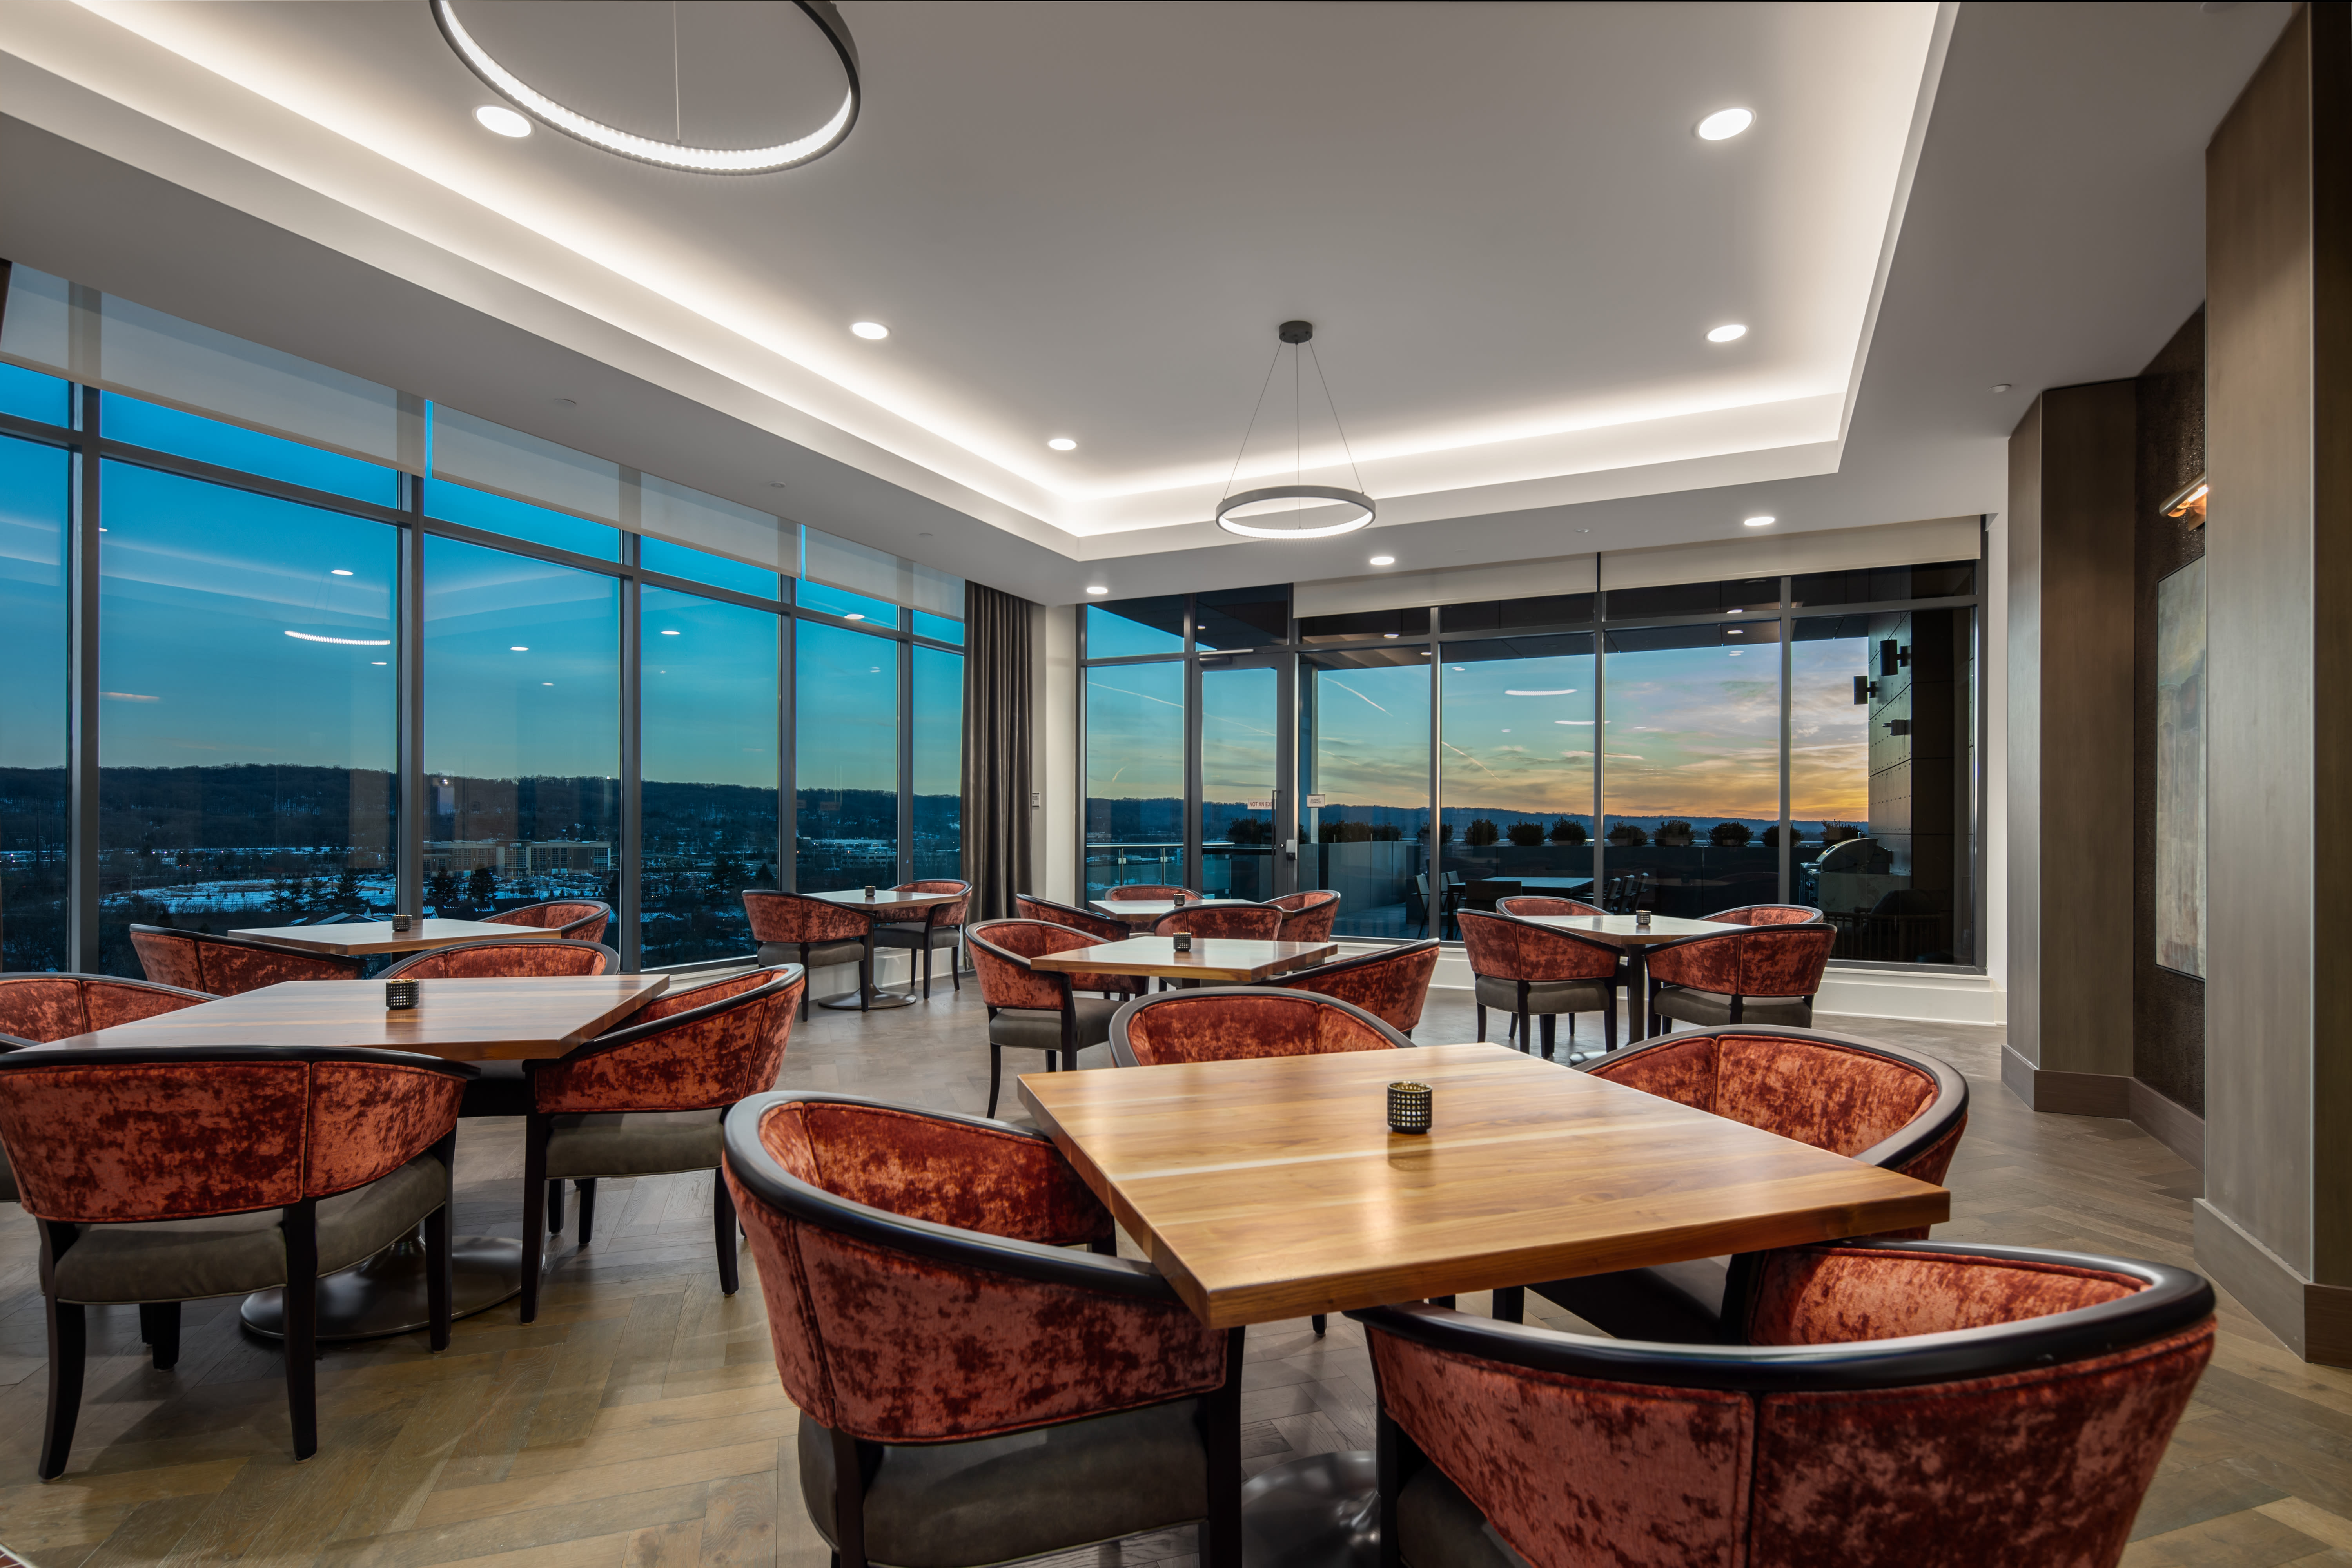 Evening view of dining room at Anthology of King of Prussia – Now Open in King of Prussia, Pennsylvania